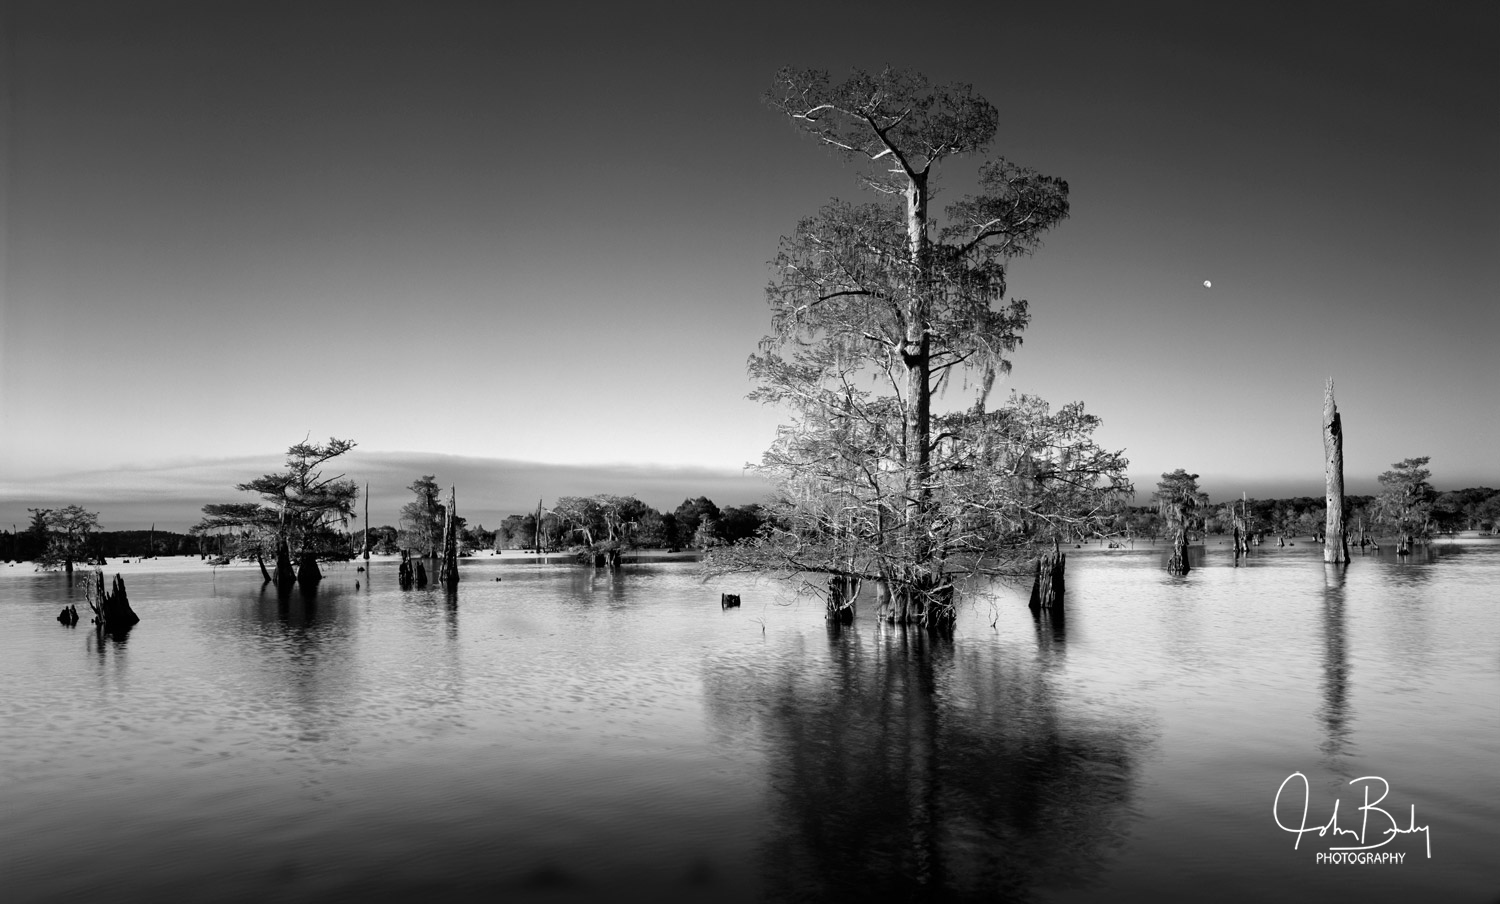 The Dead Lakes are located in the pan handle of North Florida, on the western side of the Appalachicola National Forest. This...